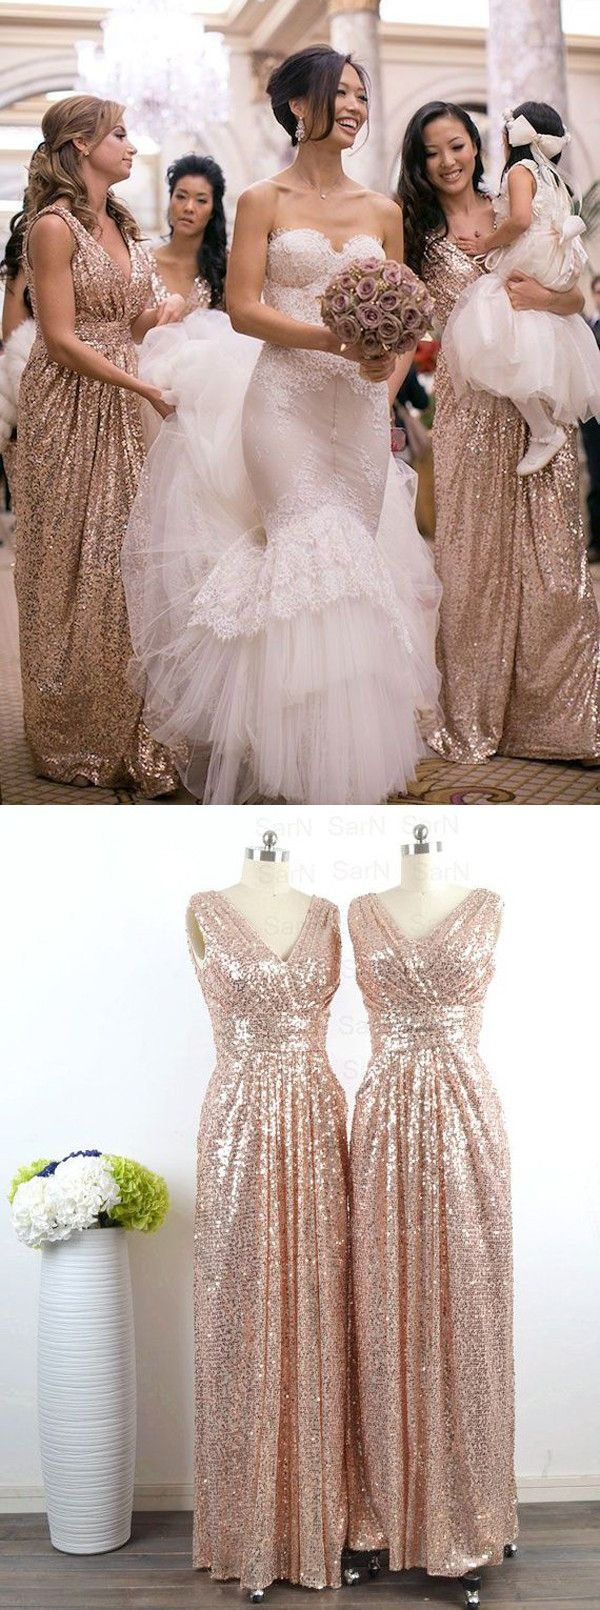 17 Best ideas about Sequin Wedding Dresses on Pinterest | Sequin ...